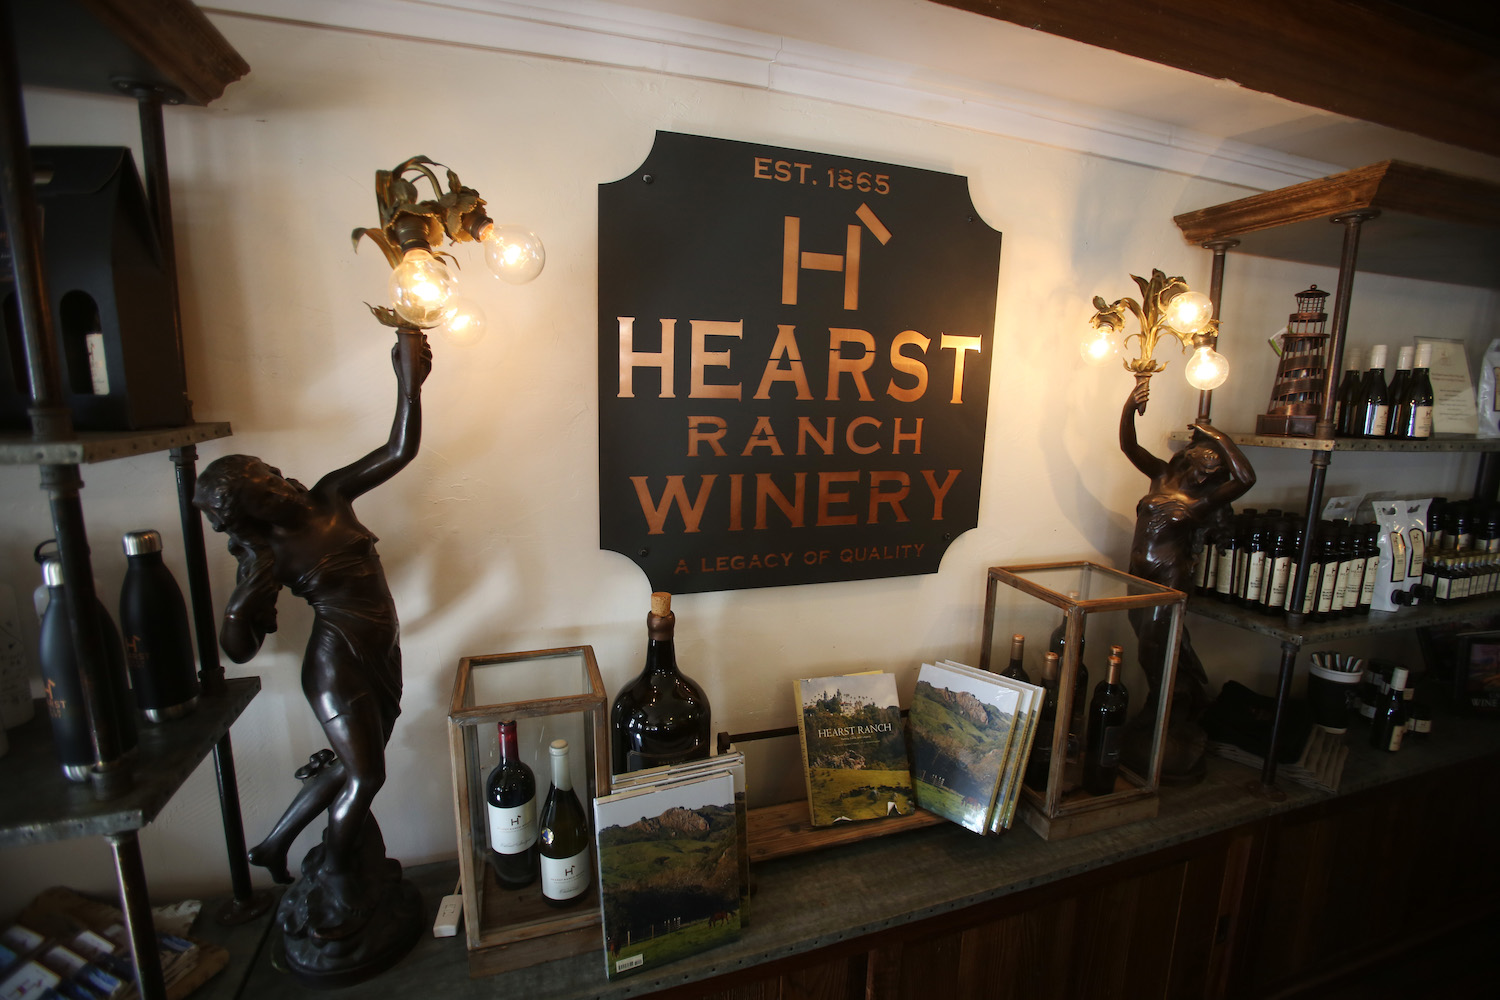 Hearst, Hearst Ranch, Hearst Ranch Winery, Paso, Paso Robles, San Luis Obispo, SLO County, San Luis Obispo wine, San Luis Obispo wineries, Paso Robles wine, Paso Robles wineries, Paso wine, Paso Robles wineries, California wine, wine country, California Wineries, The Press